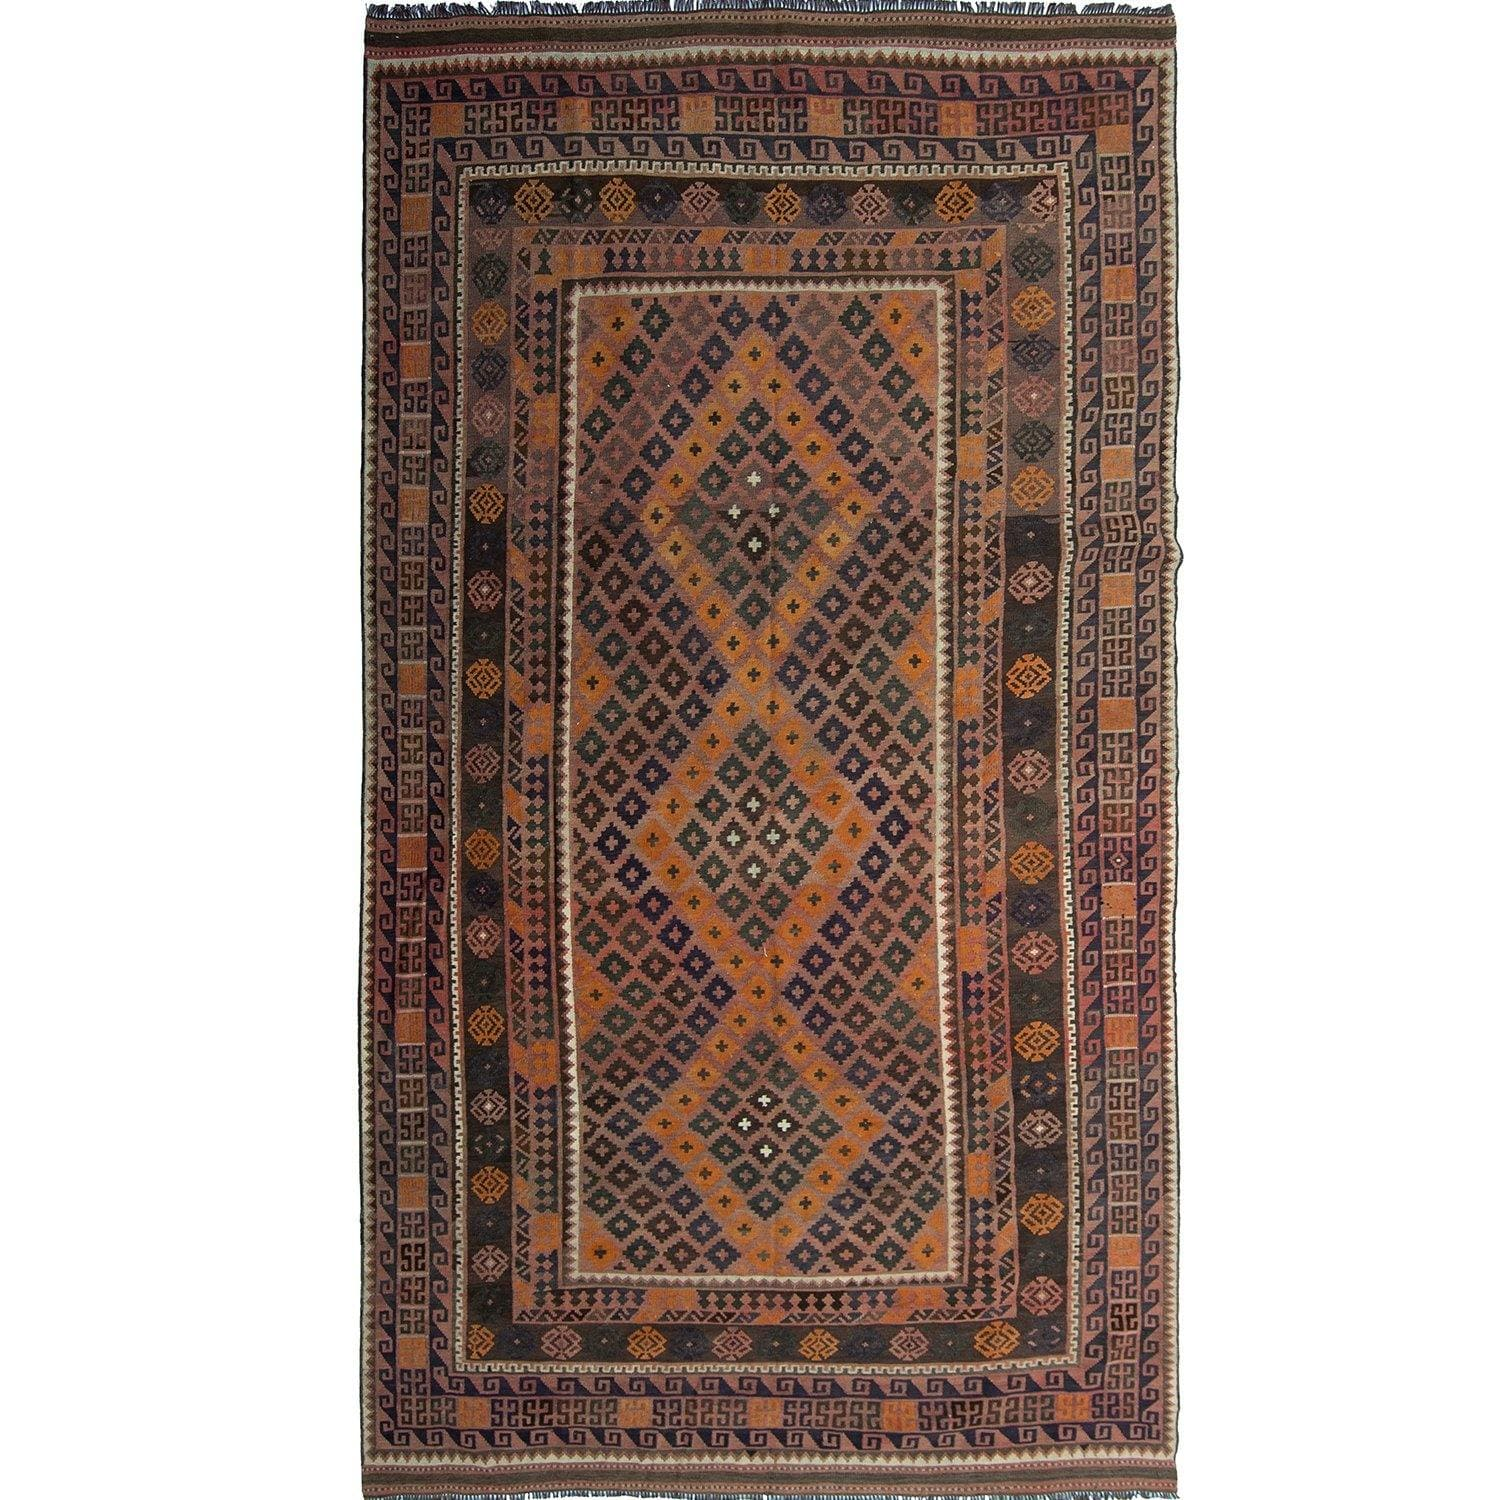 Fine Hand-woven 100% Wool Kilim Rug 237cm x 441cm Persian-Rug | House-of-Haghi | NewMarket | Auckland | NZ | Handmade Persian Rugs | Hand Knotted Persian Rugs